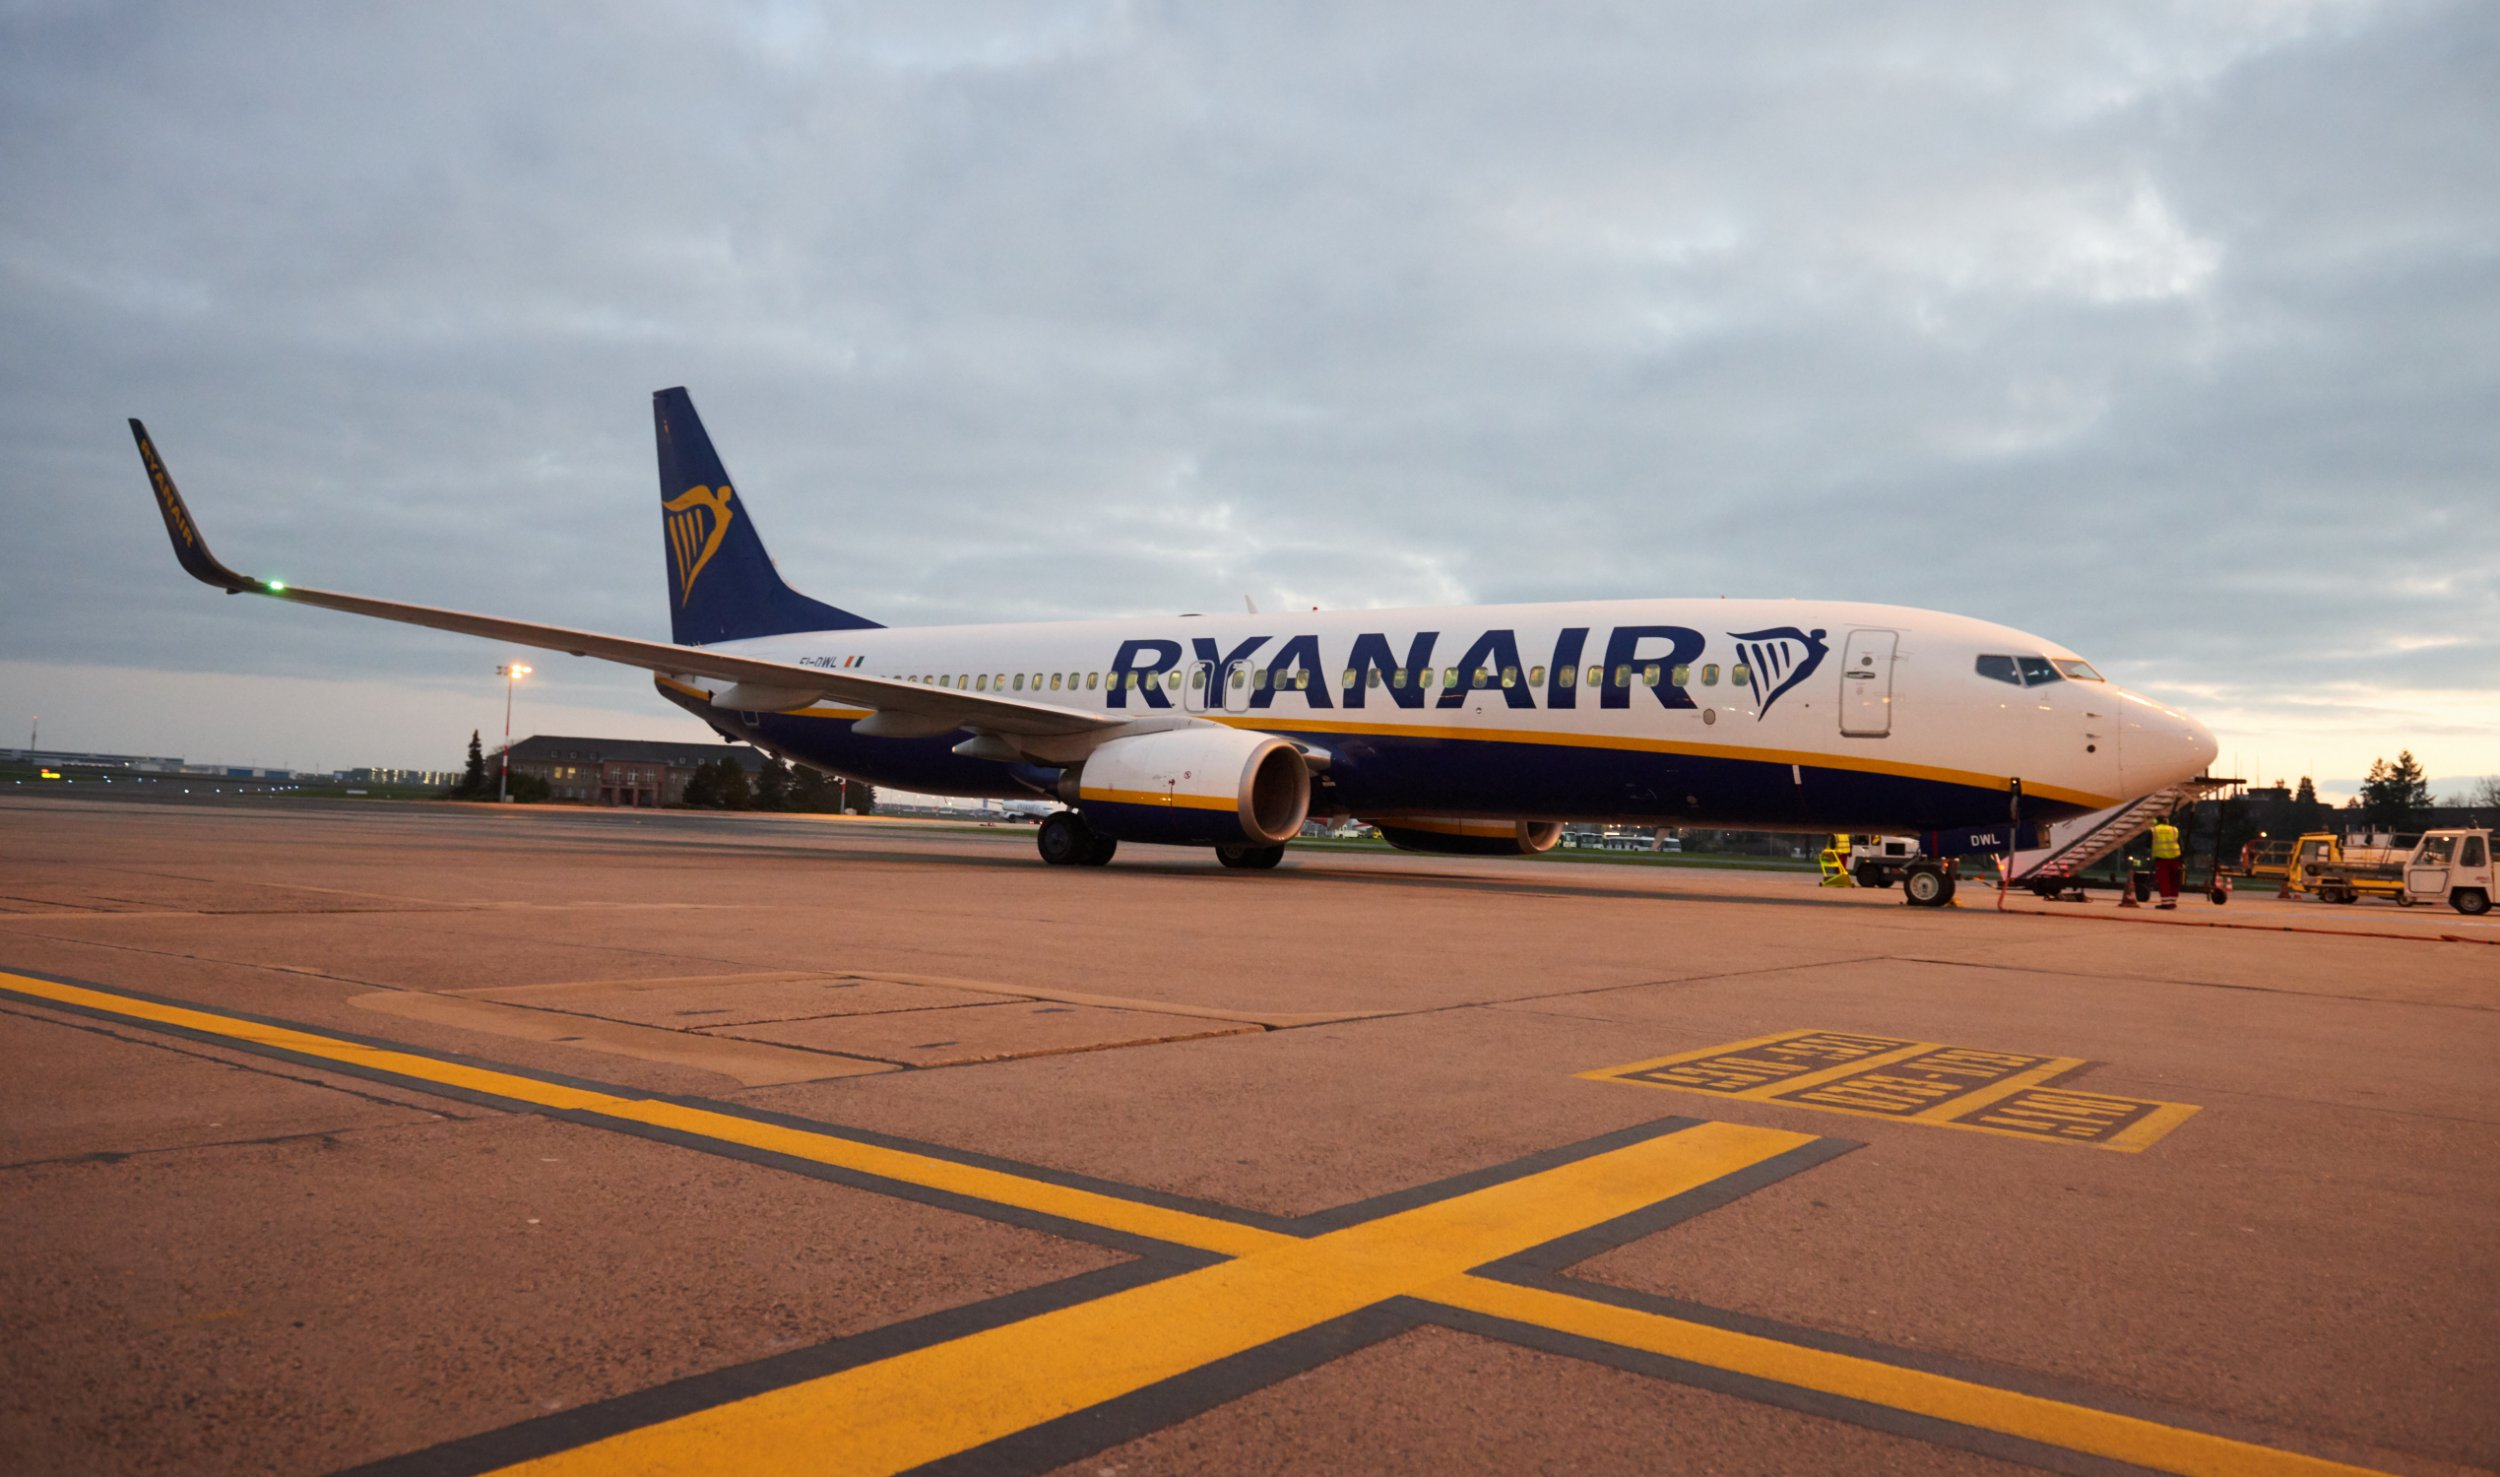 02 April 2019, Berlin: A passenger plane of the airline Ryanair stands at the airport Tegel. Photo: Annette Riedl/dpa-Zentralbild/ZB